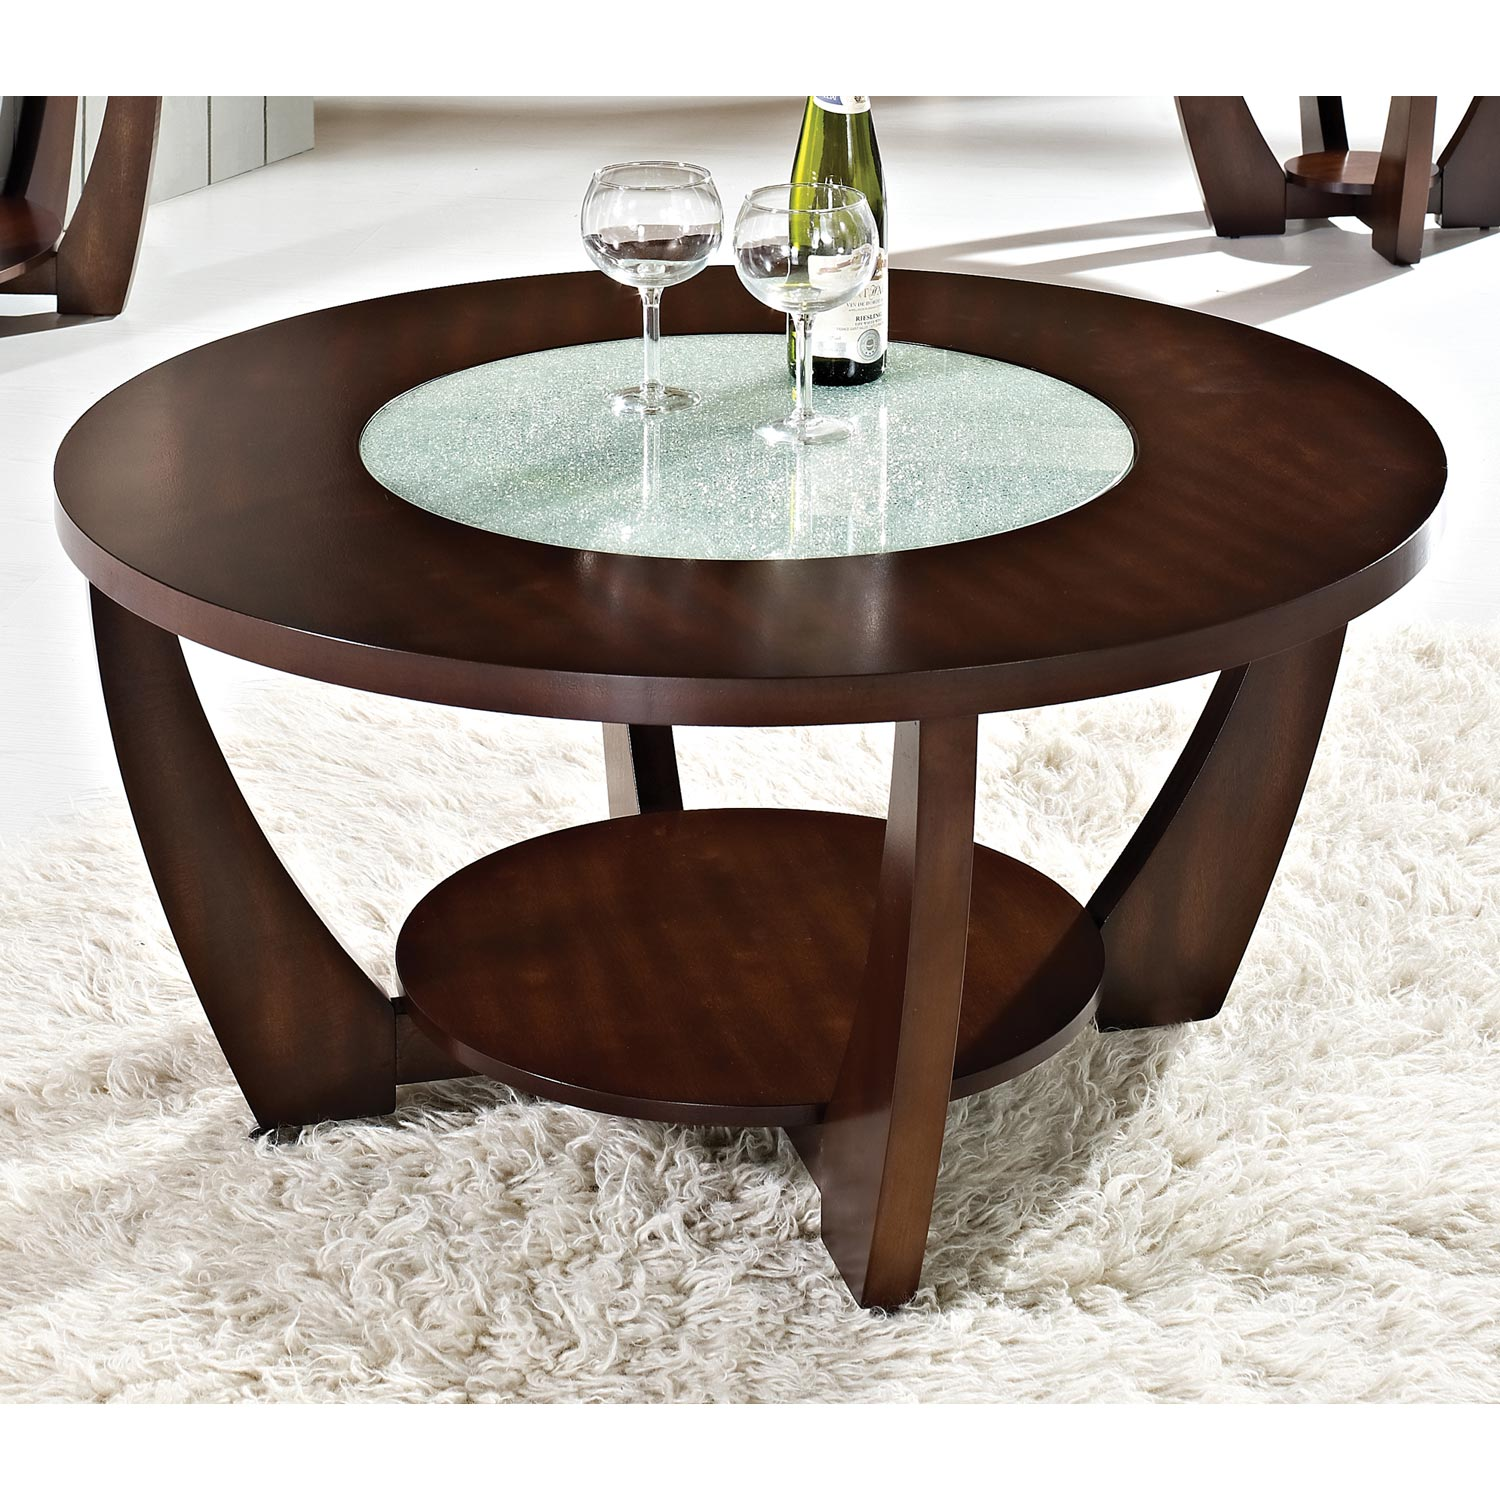 rafael round coffee table crackled glass ssc